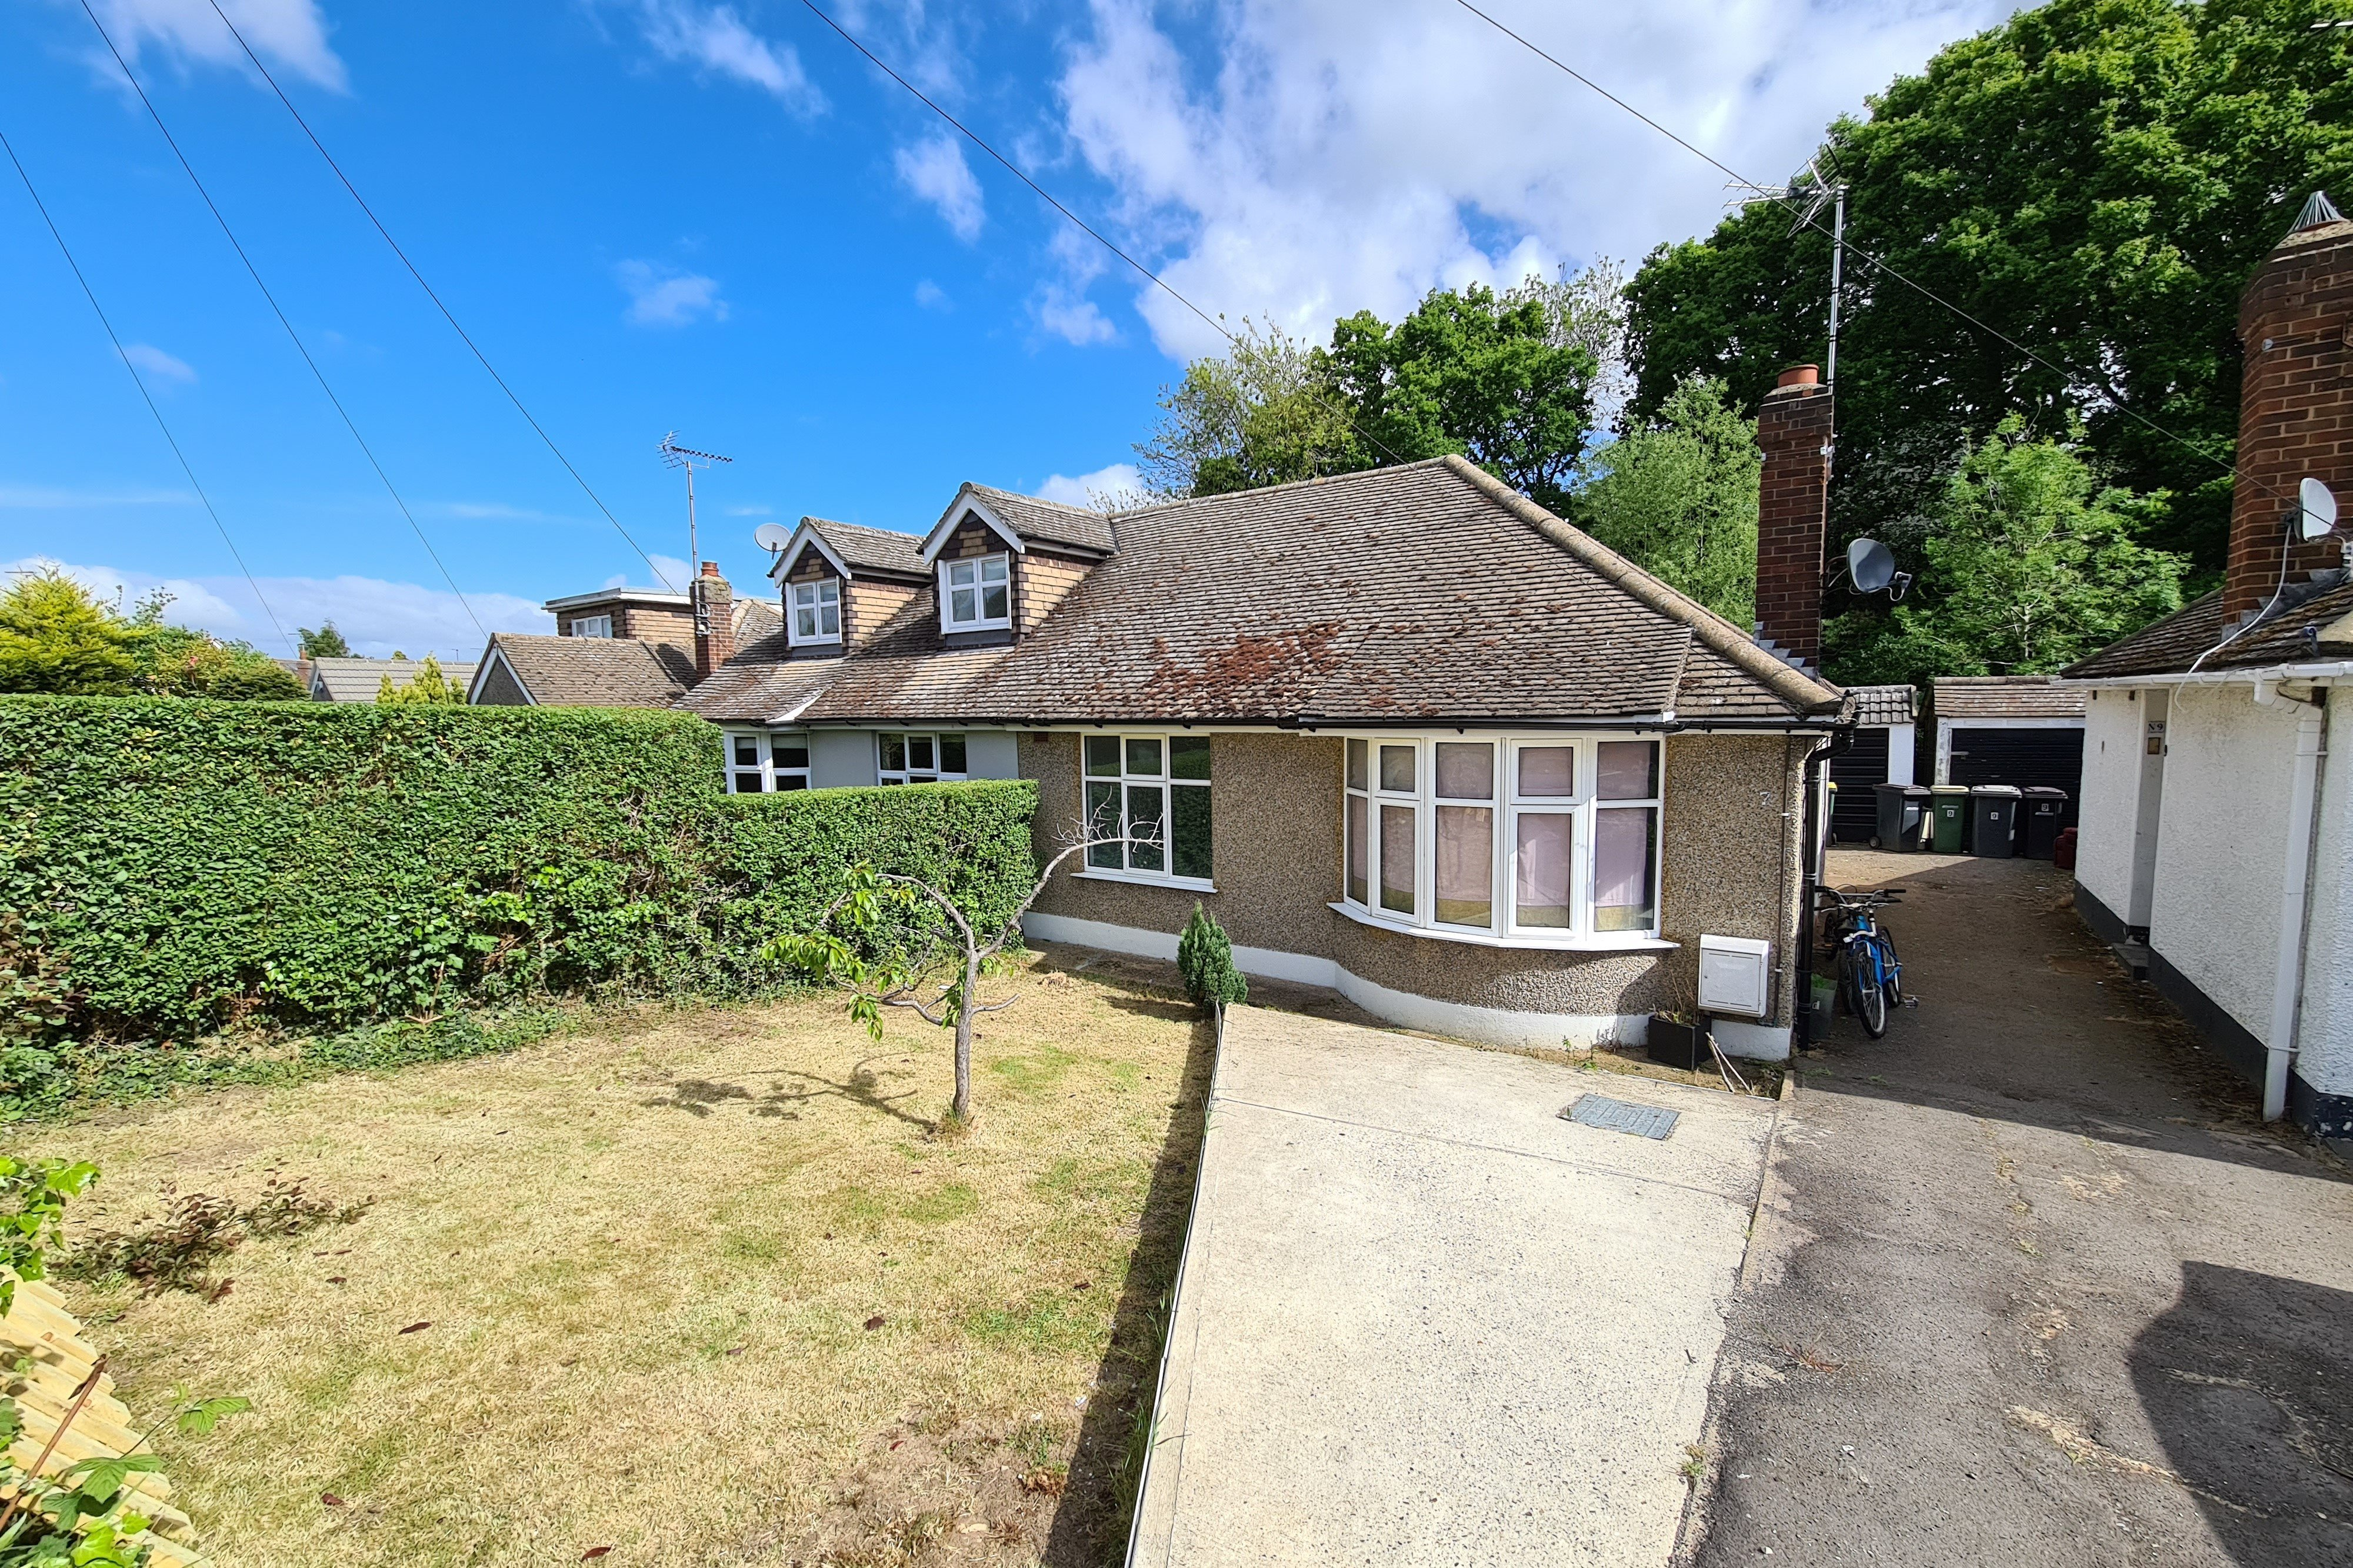 2 bed semi-detached bungalow for sale in Mendip Close, Rayleigh - Property Image 1